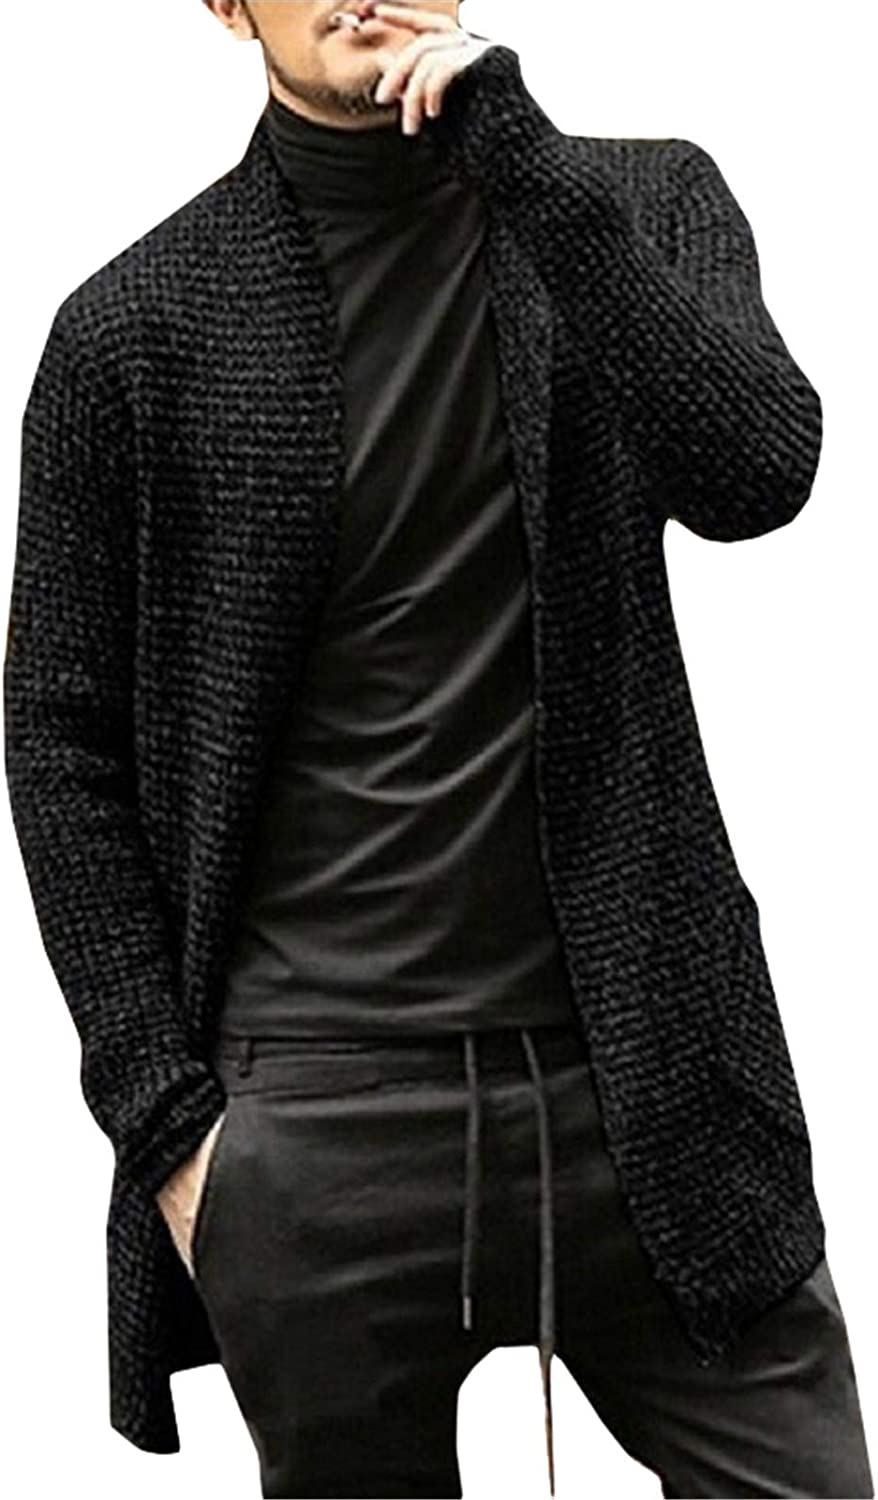 Sweater Cardigan Men Autumn Knitted Sweater Men's Coat Solid Long Sleeves Long Casual Cardigan